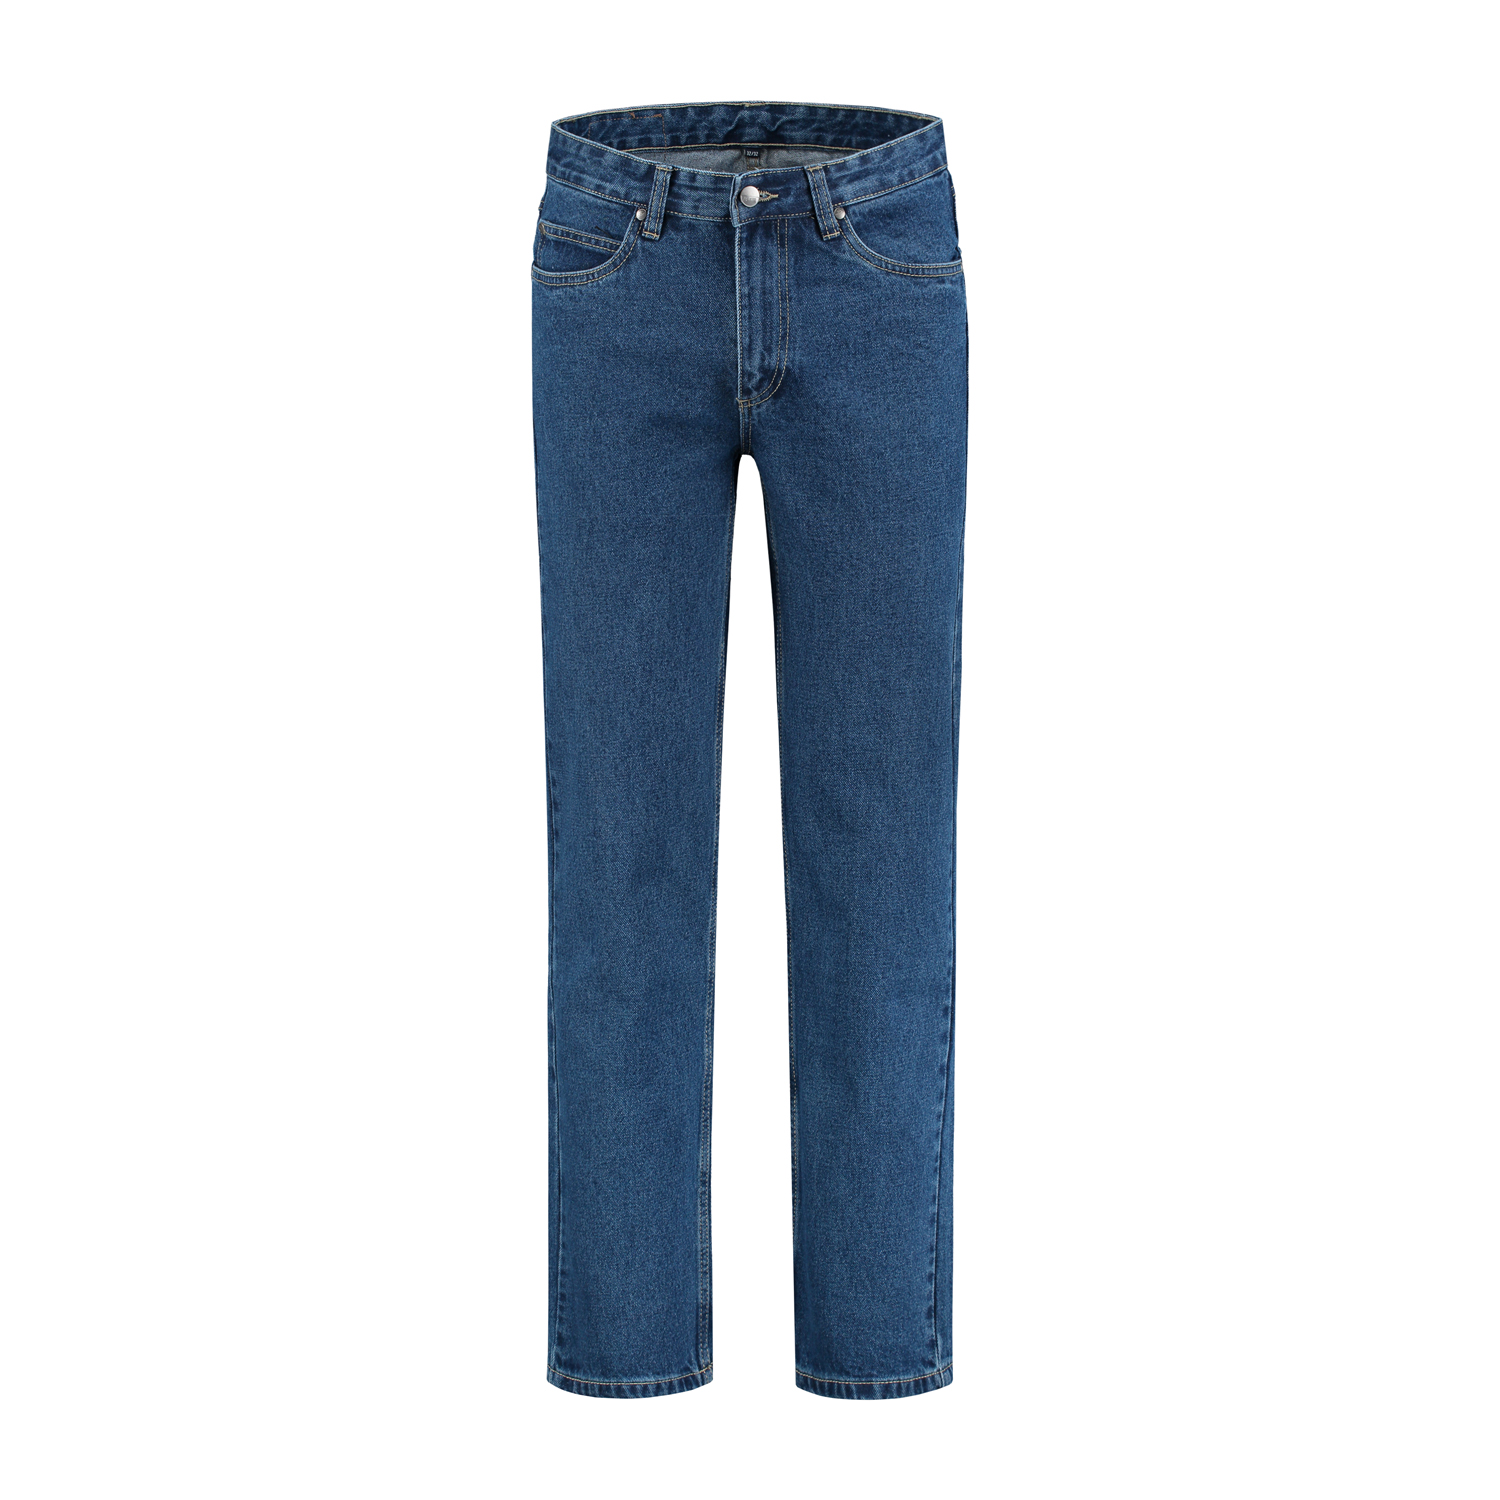 DJV Jeans Colorado DS